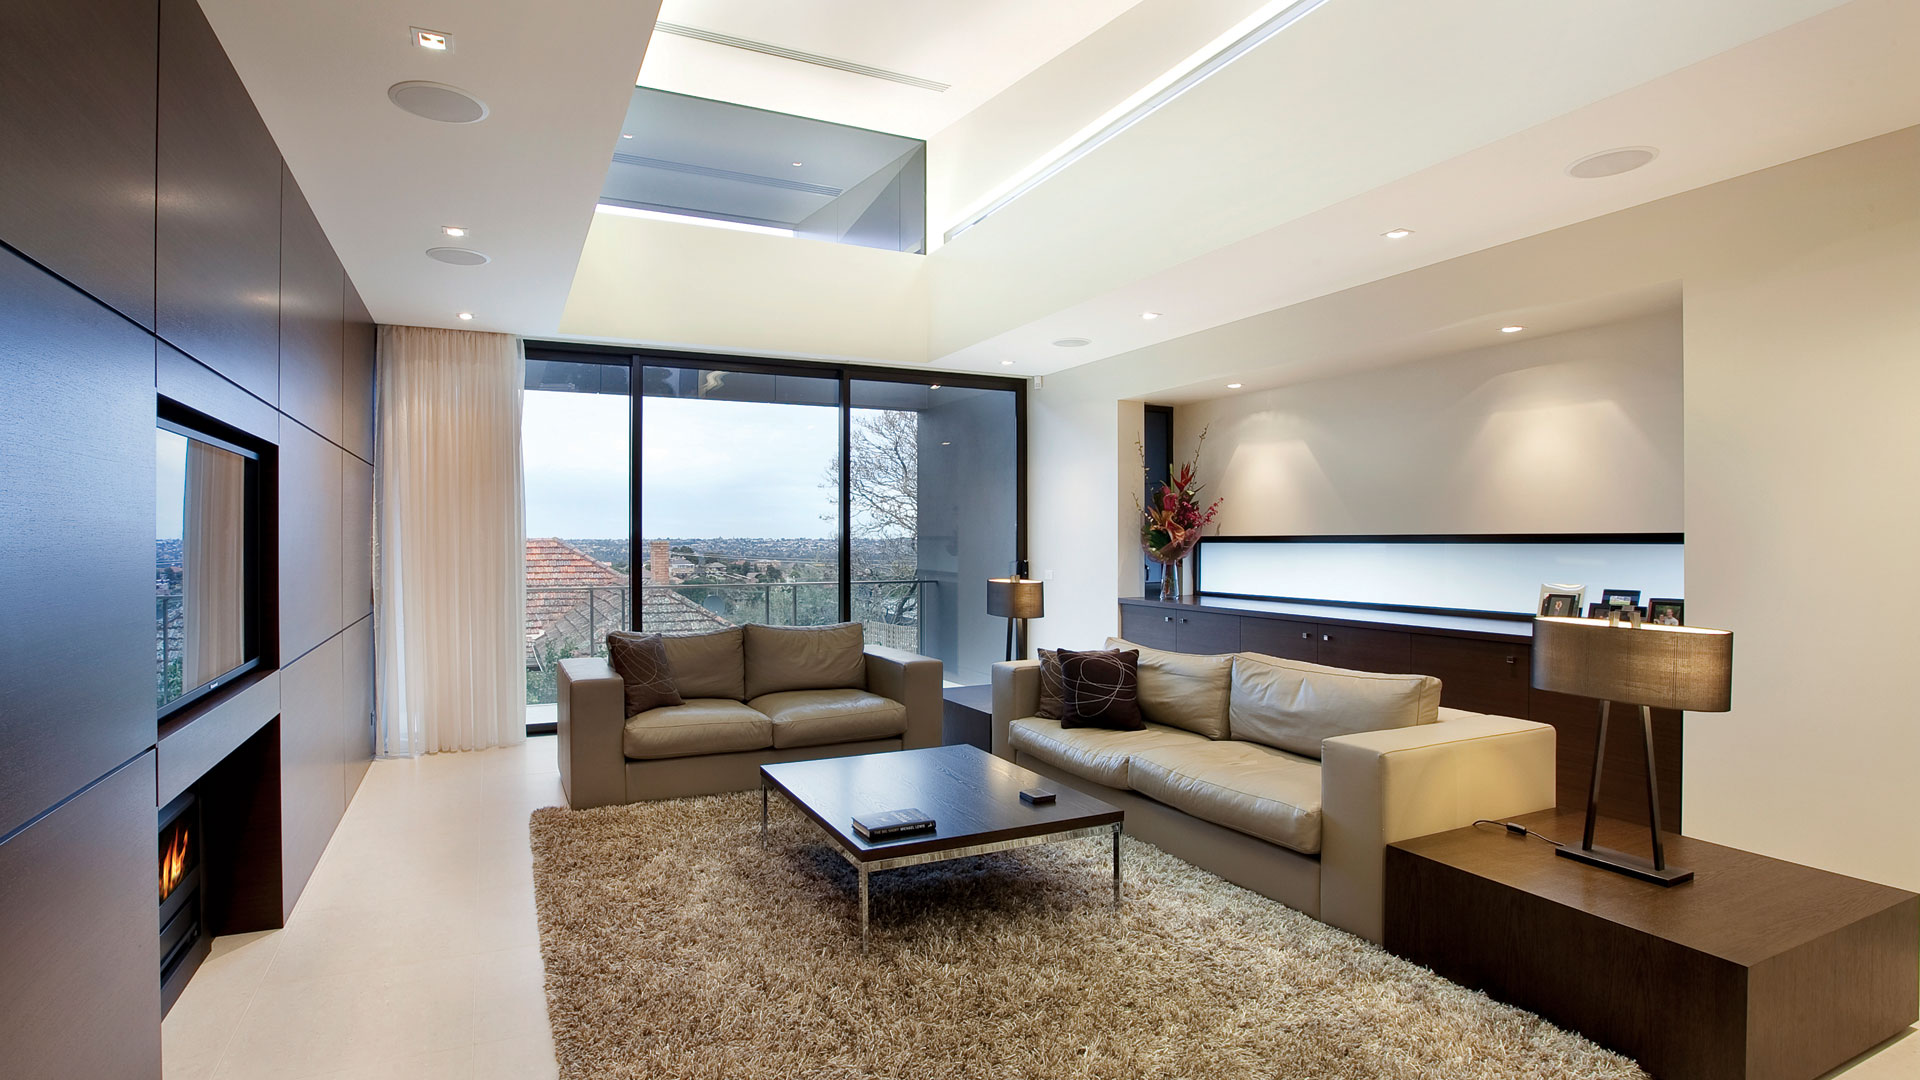 Masterplan builders surryhills melbourne